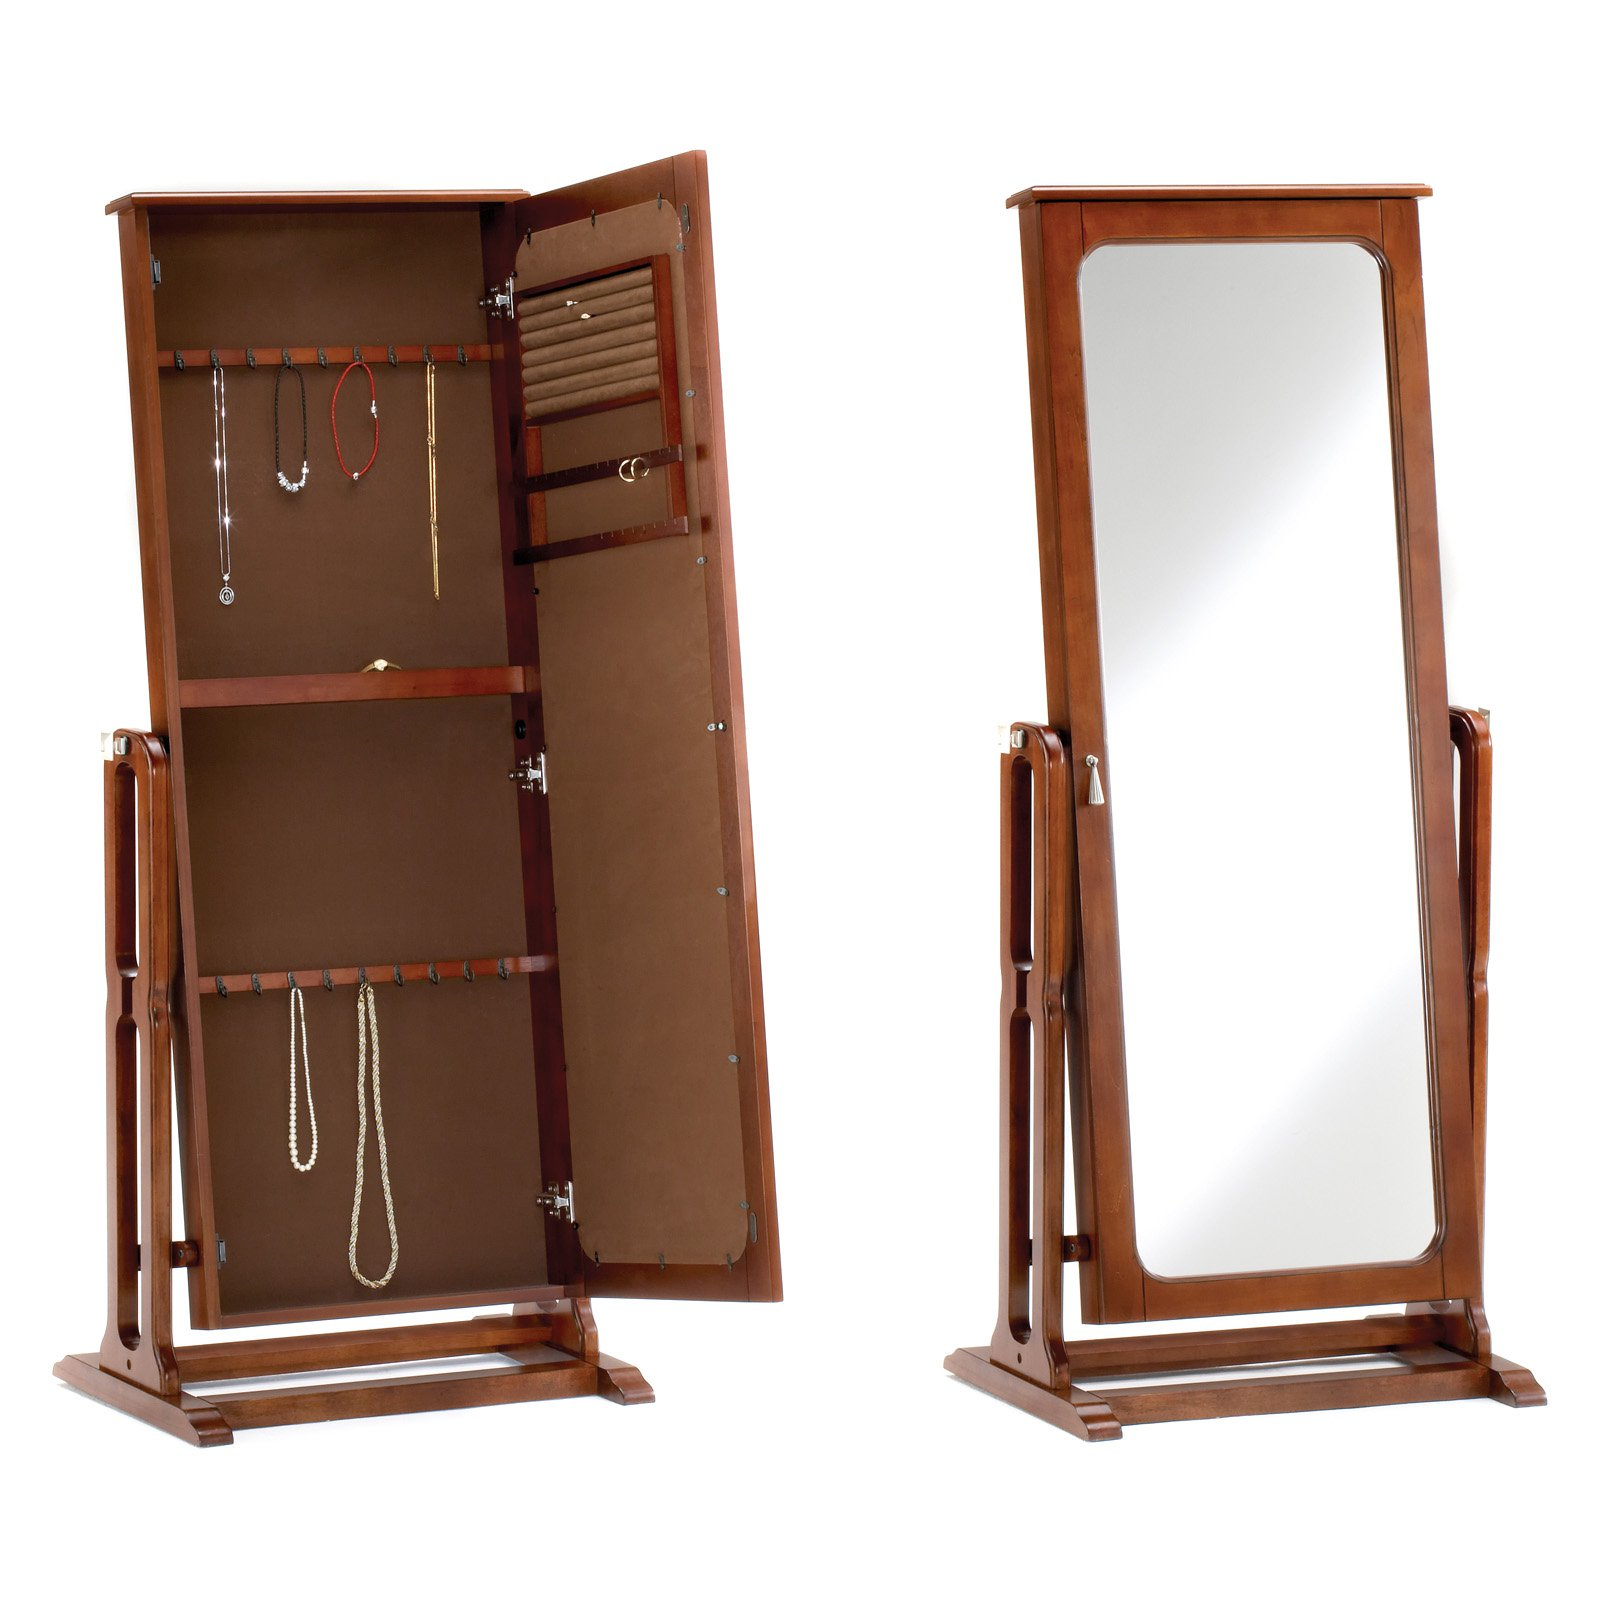 Bernards Cherry Jewelry Armoire with Full Length Mirror